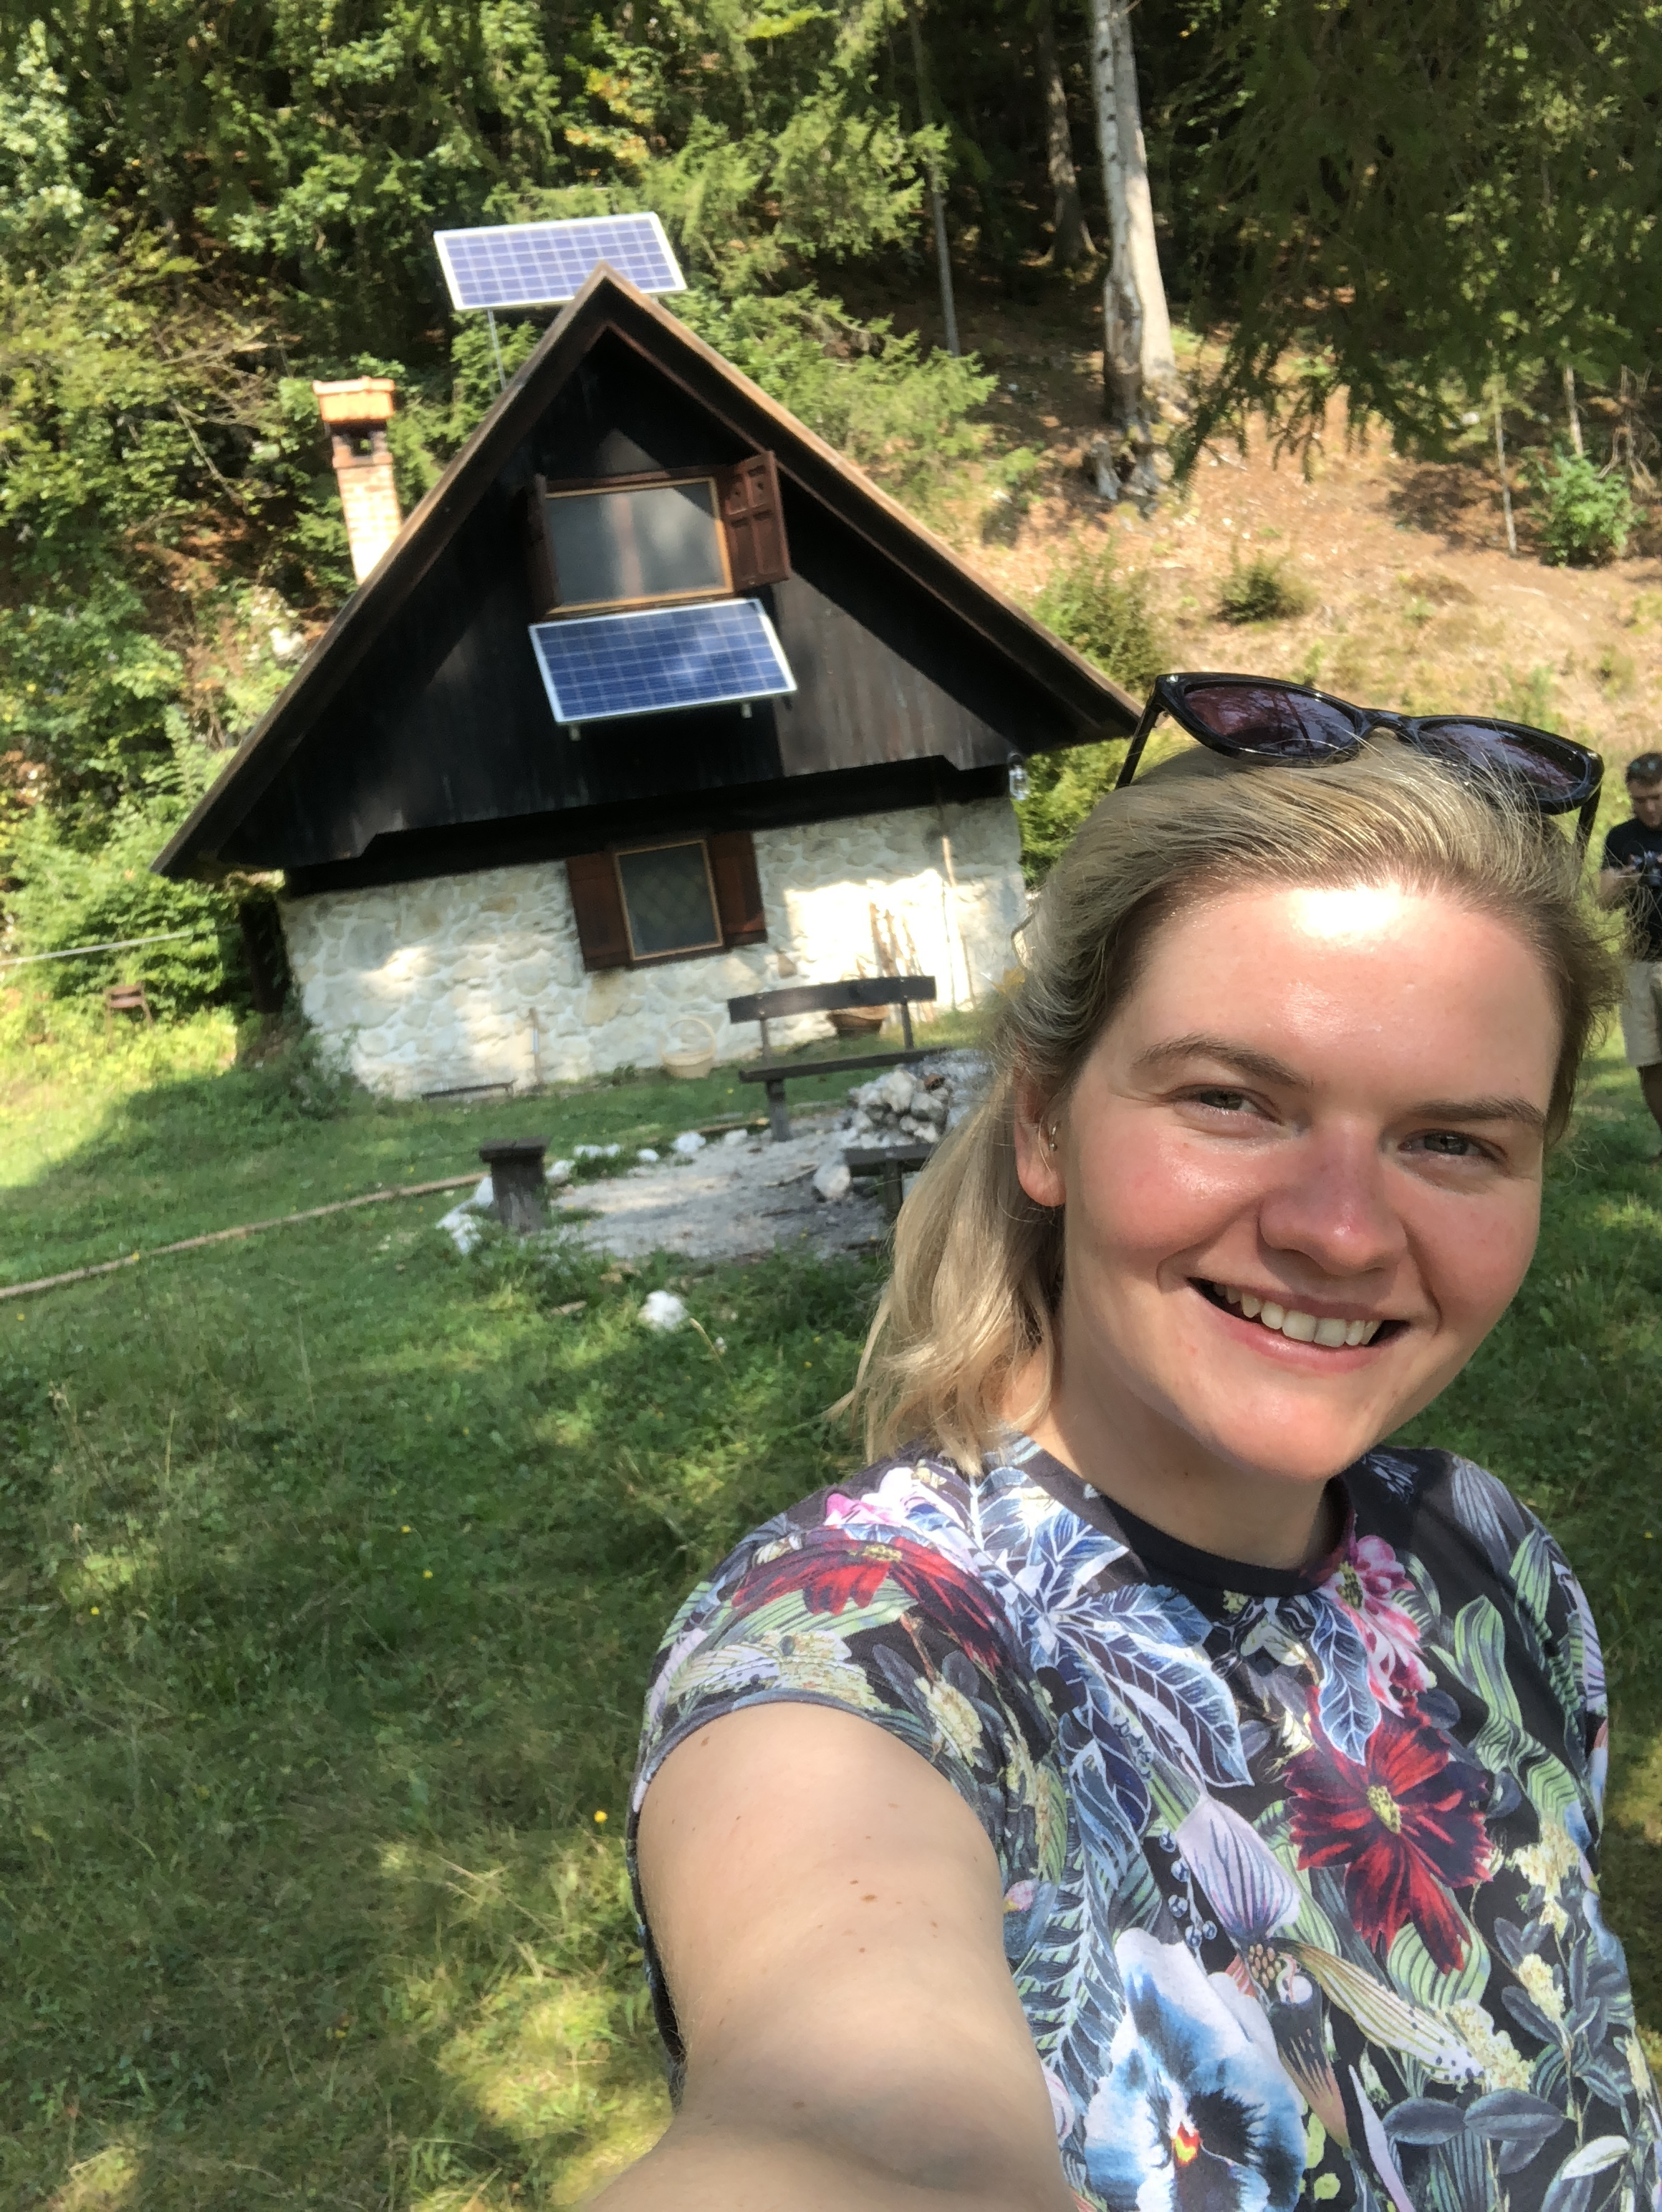 In front of our eco-hut in Slovenia with a very sunburnt face